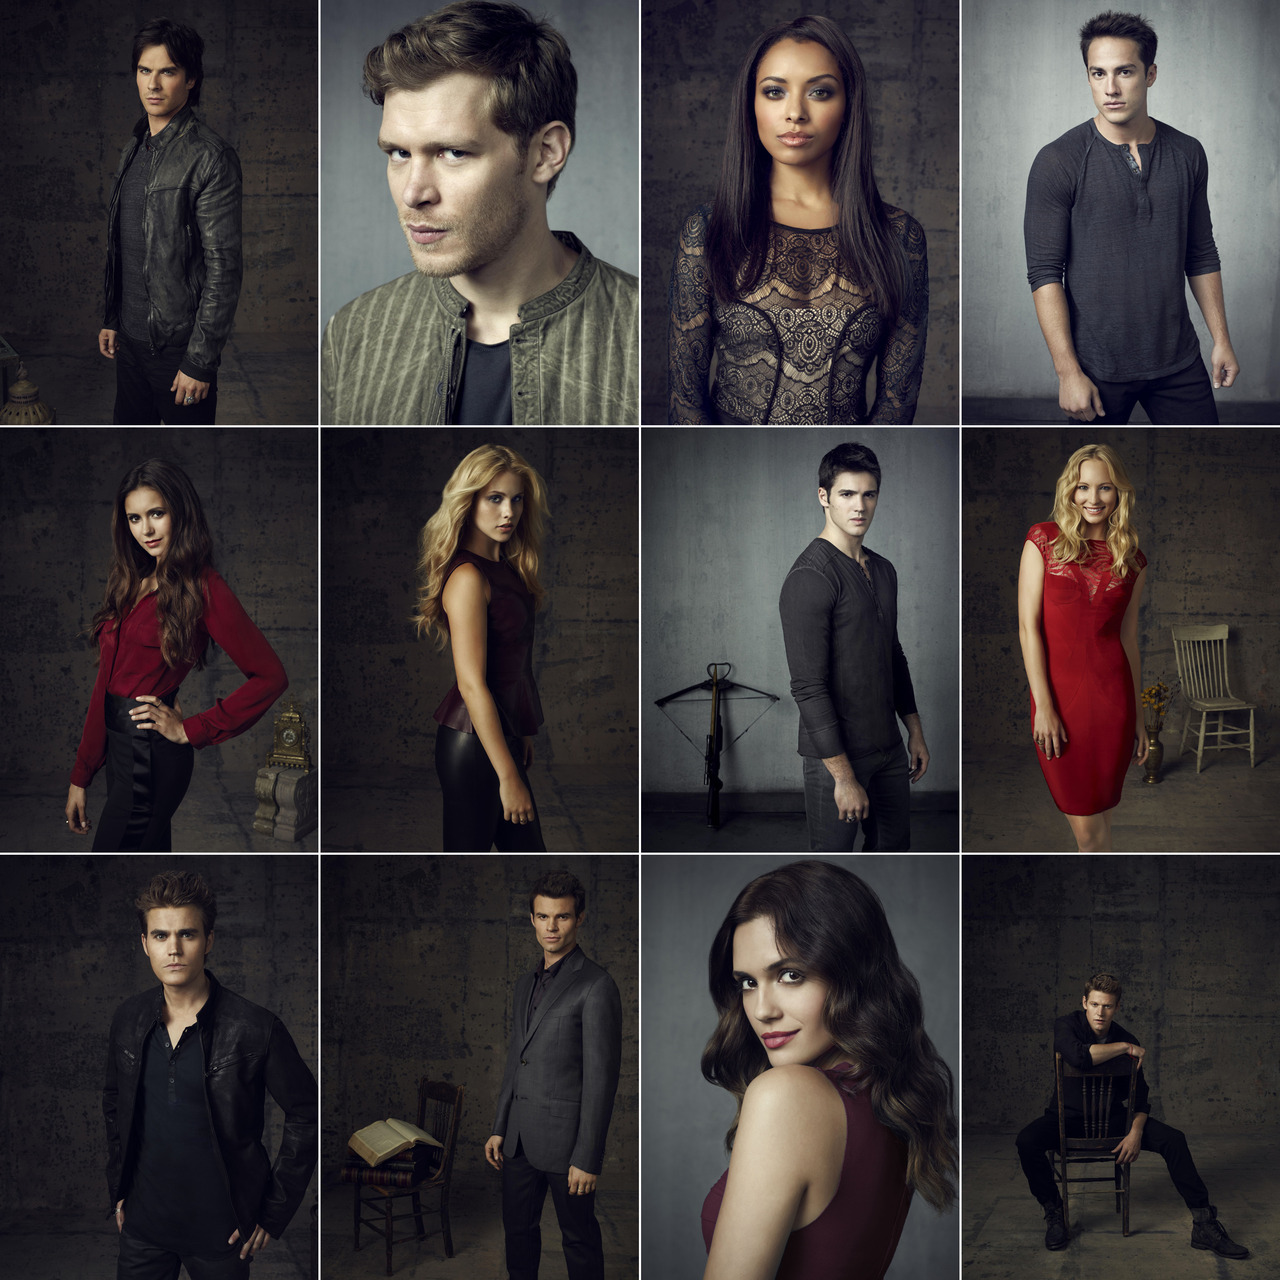 The Vampire Diaries season 4 cast portraits EVERYONE KISS!